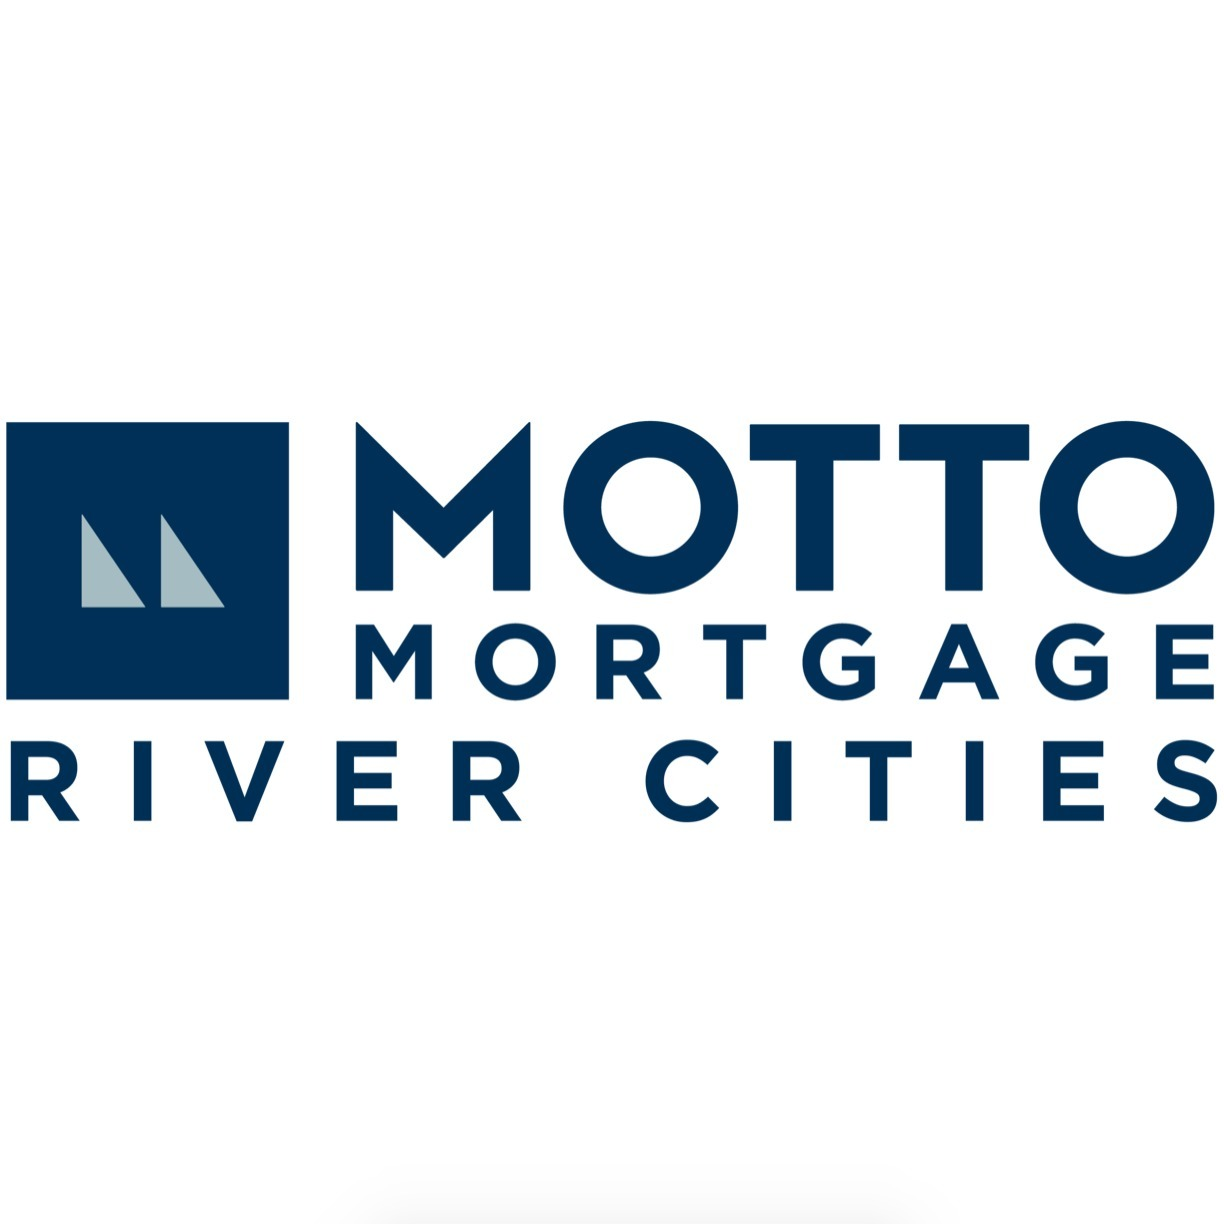 Motto Mortgage River Cities (@mottomortgagerivercities) Cover Image